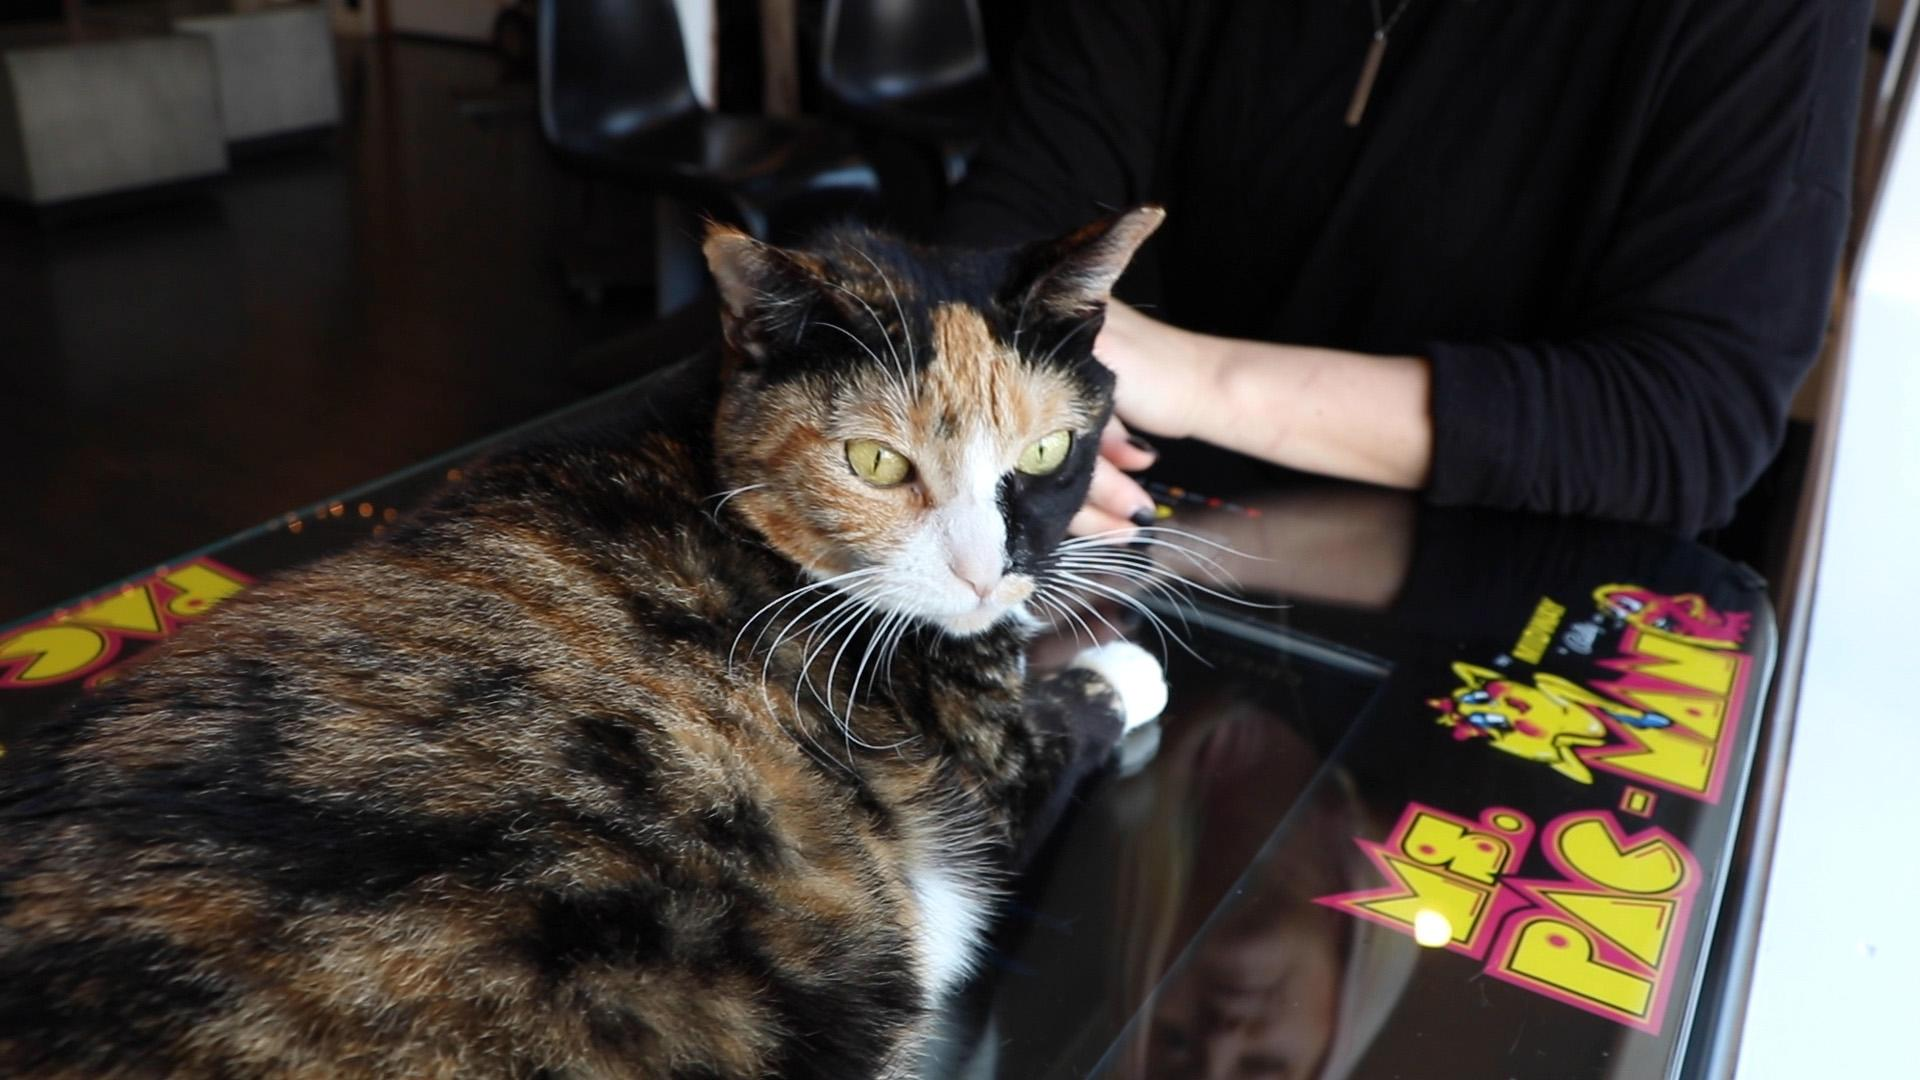 Spring, a cat rescued from the U.S. Virgin Islands, rests on a Ms. Pac Man game at Catcade. (Evan Garcia / WTTW News)